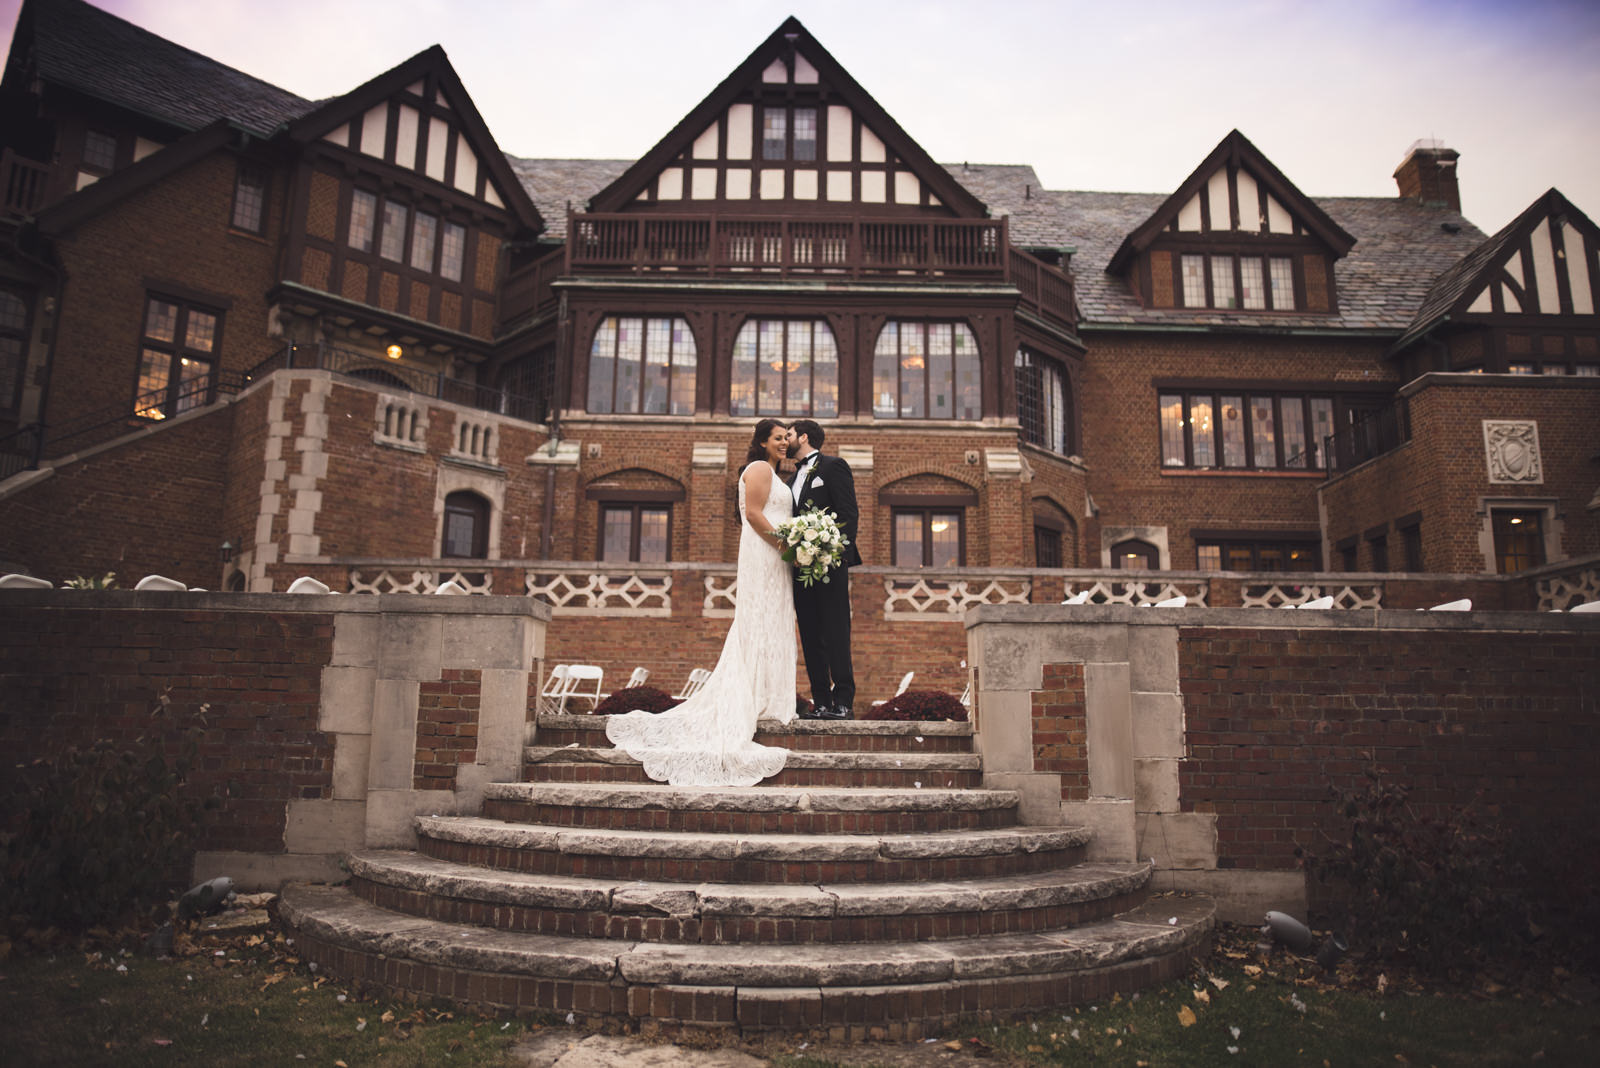 rollins-mansion-3224-wedding-photographer-des-moines-iowa-m-c.jpg